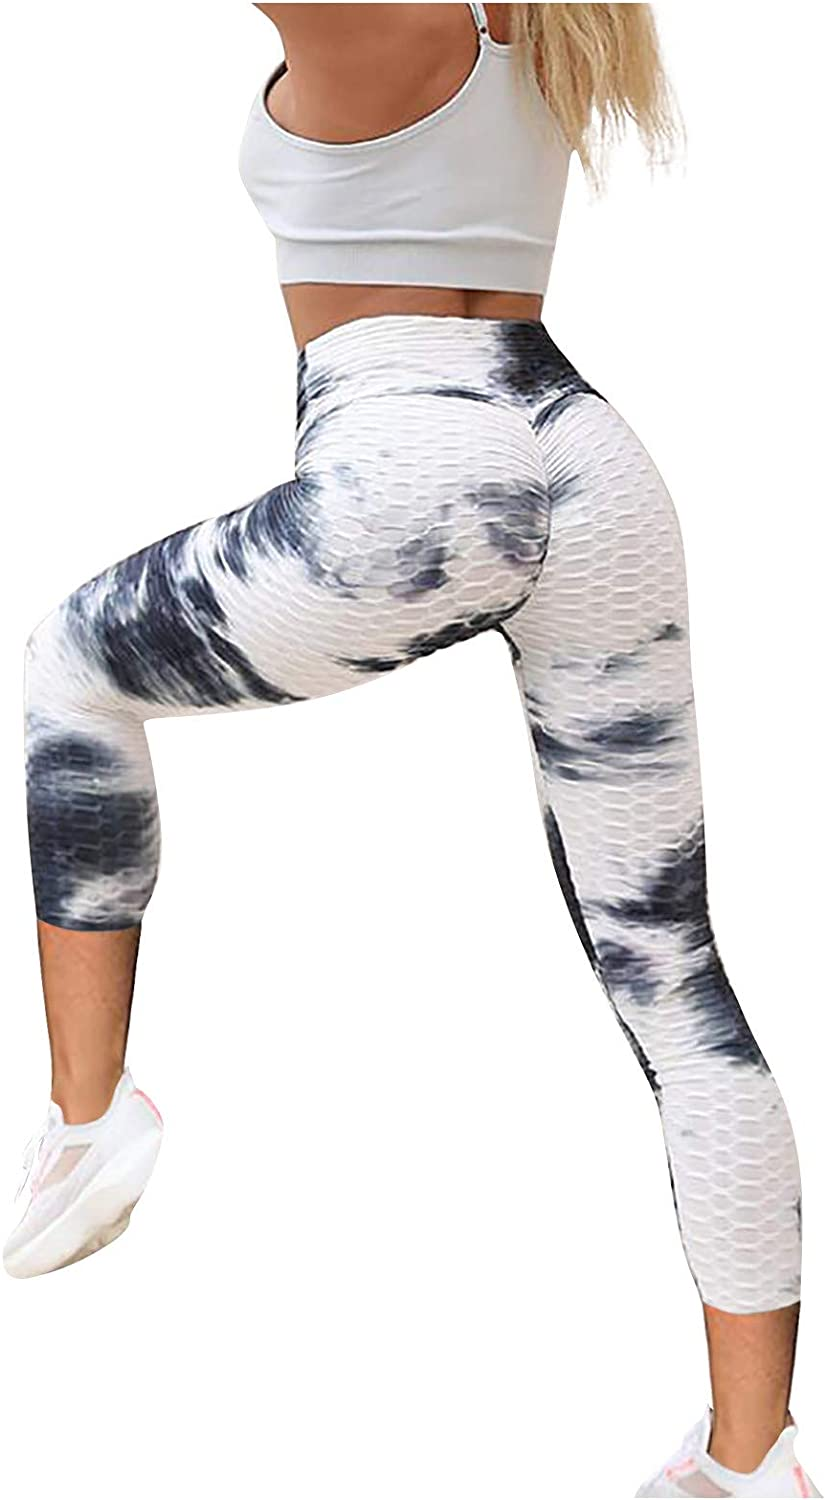 JOAU Women's High Waist Free shipping Yoga In stock Pants Workout Control Tummy Ruched